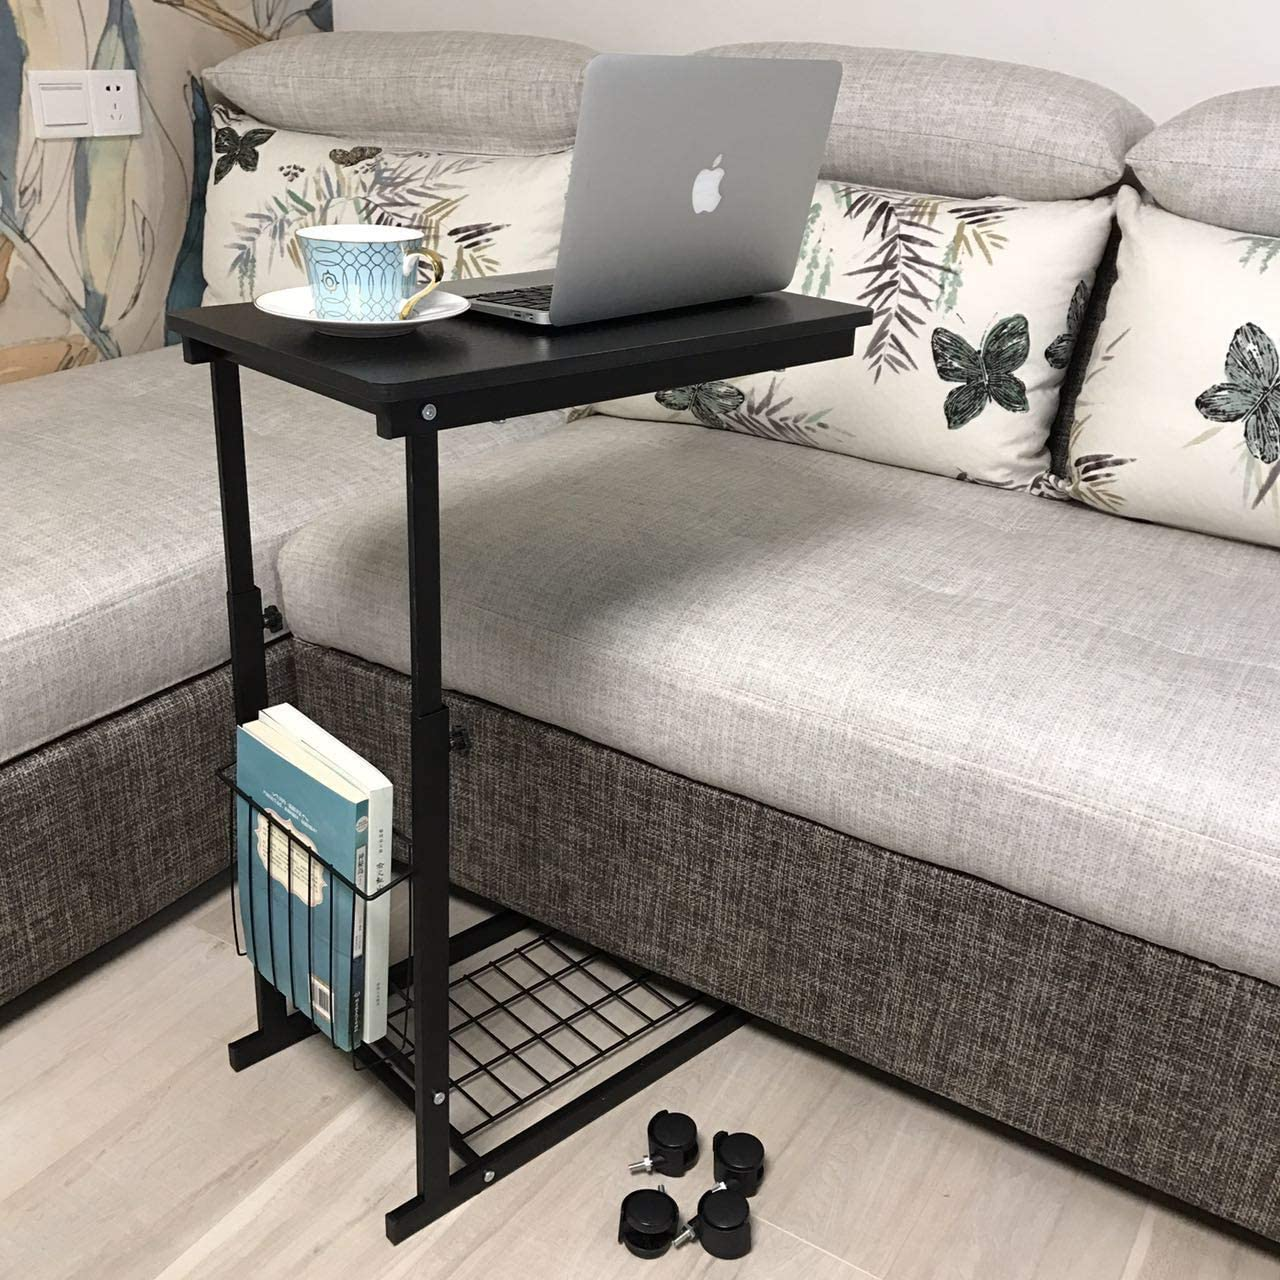 Micoe Sofa Side Table With Wheels Couch That Slide Under Storage Shelves C Style End Tables Height Adjustable Overbed Black In Taiwan B071z9d16p - Side Table With Storage Shelves